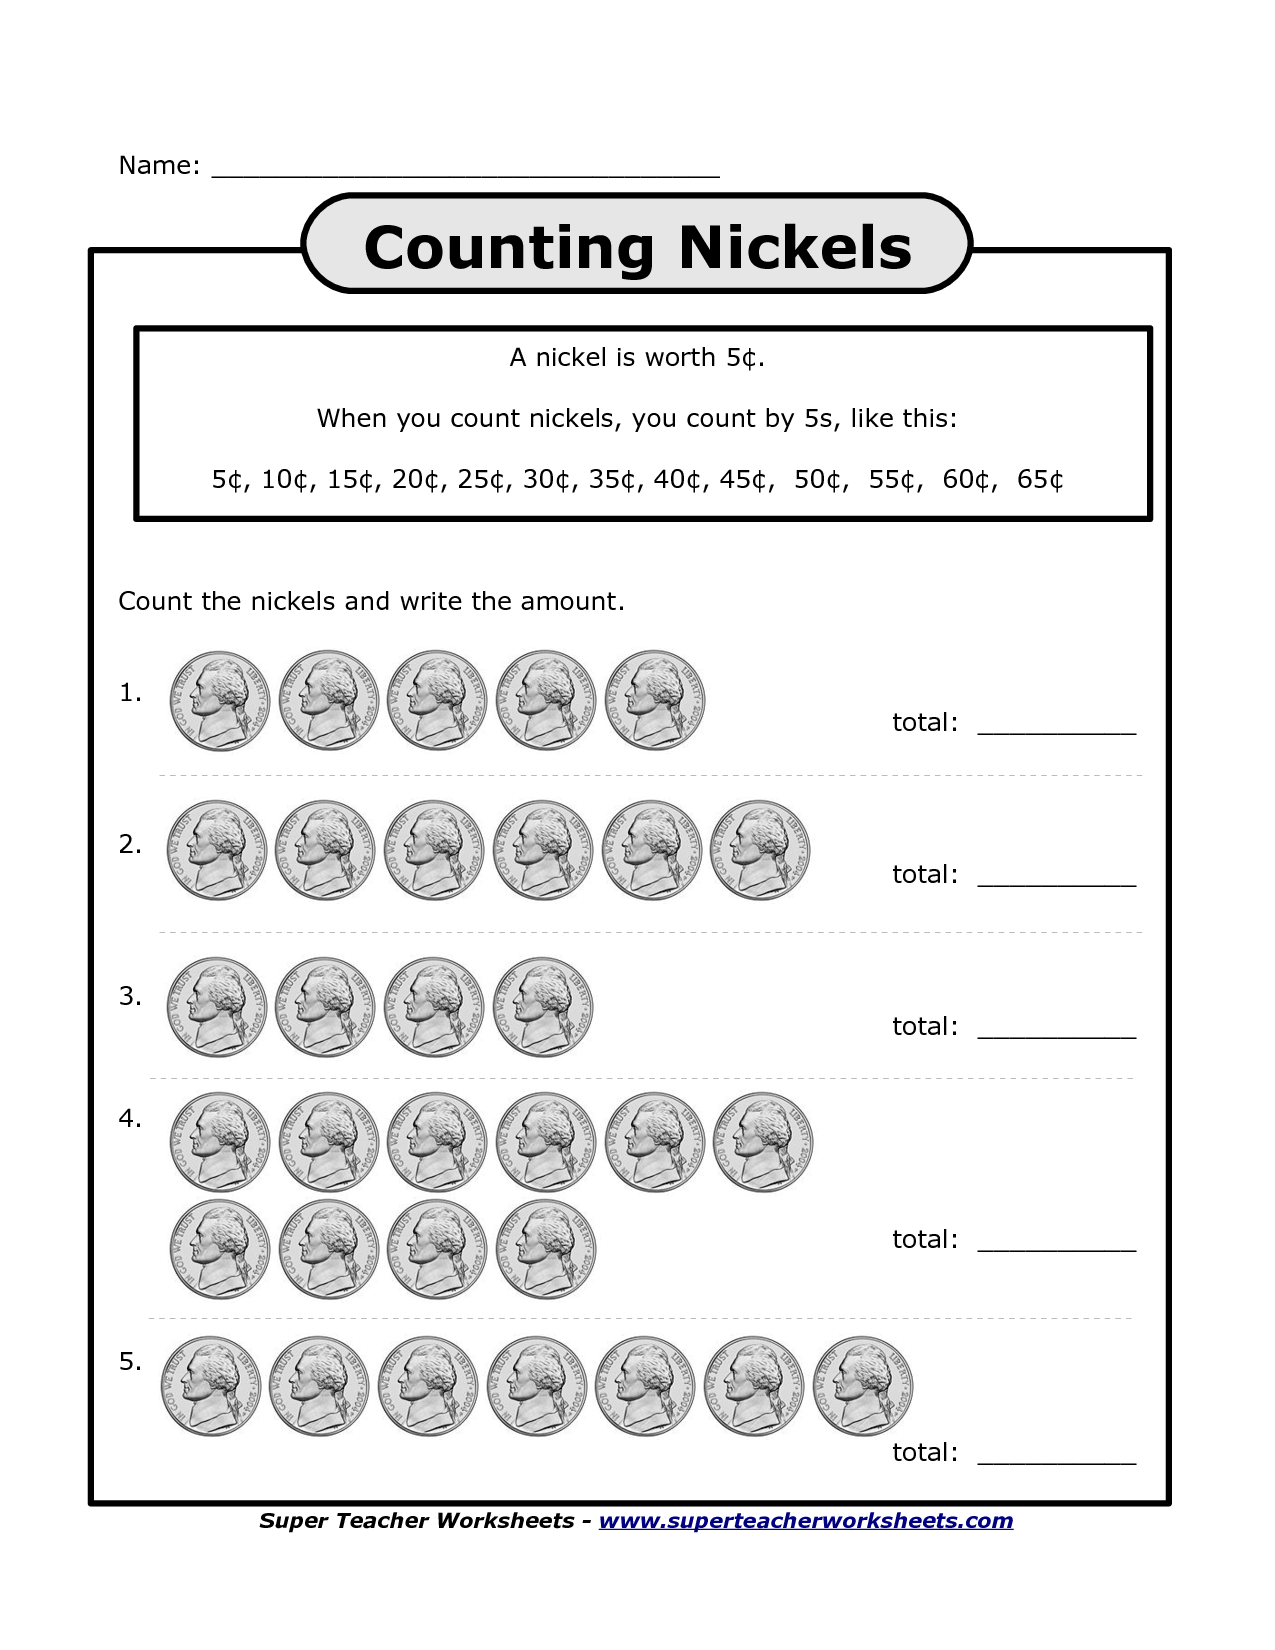 Worksheets Counting Nickels Worksheet counting nickels and pennies worksheet free worksheets library photo m ey th col g p ge im ges e ster egg hunt me